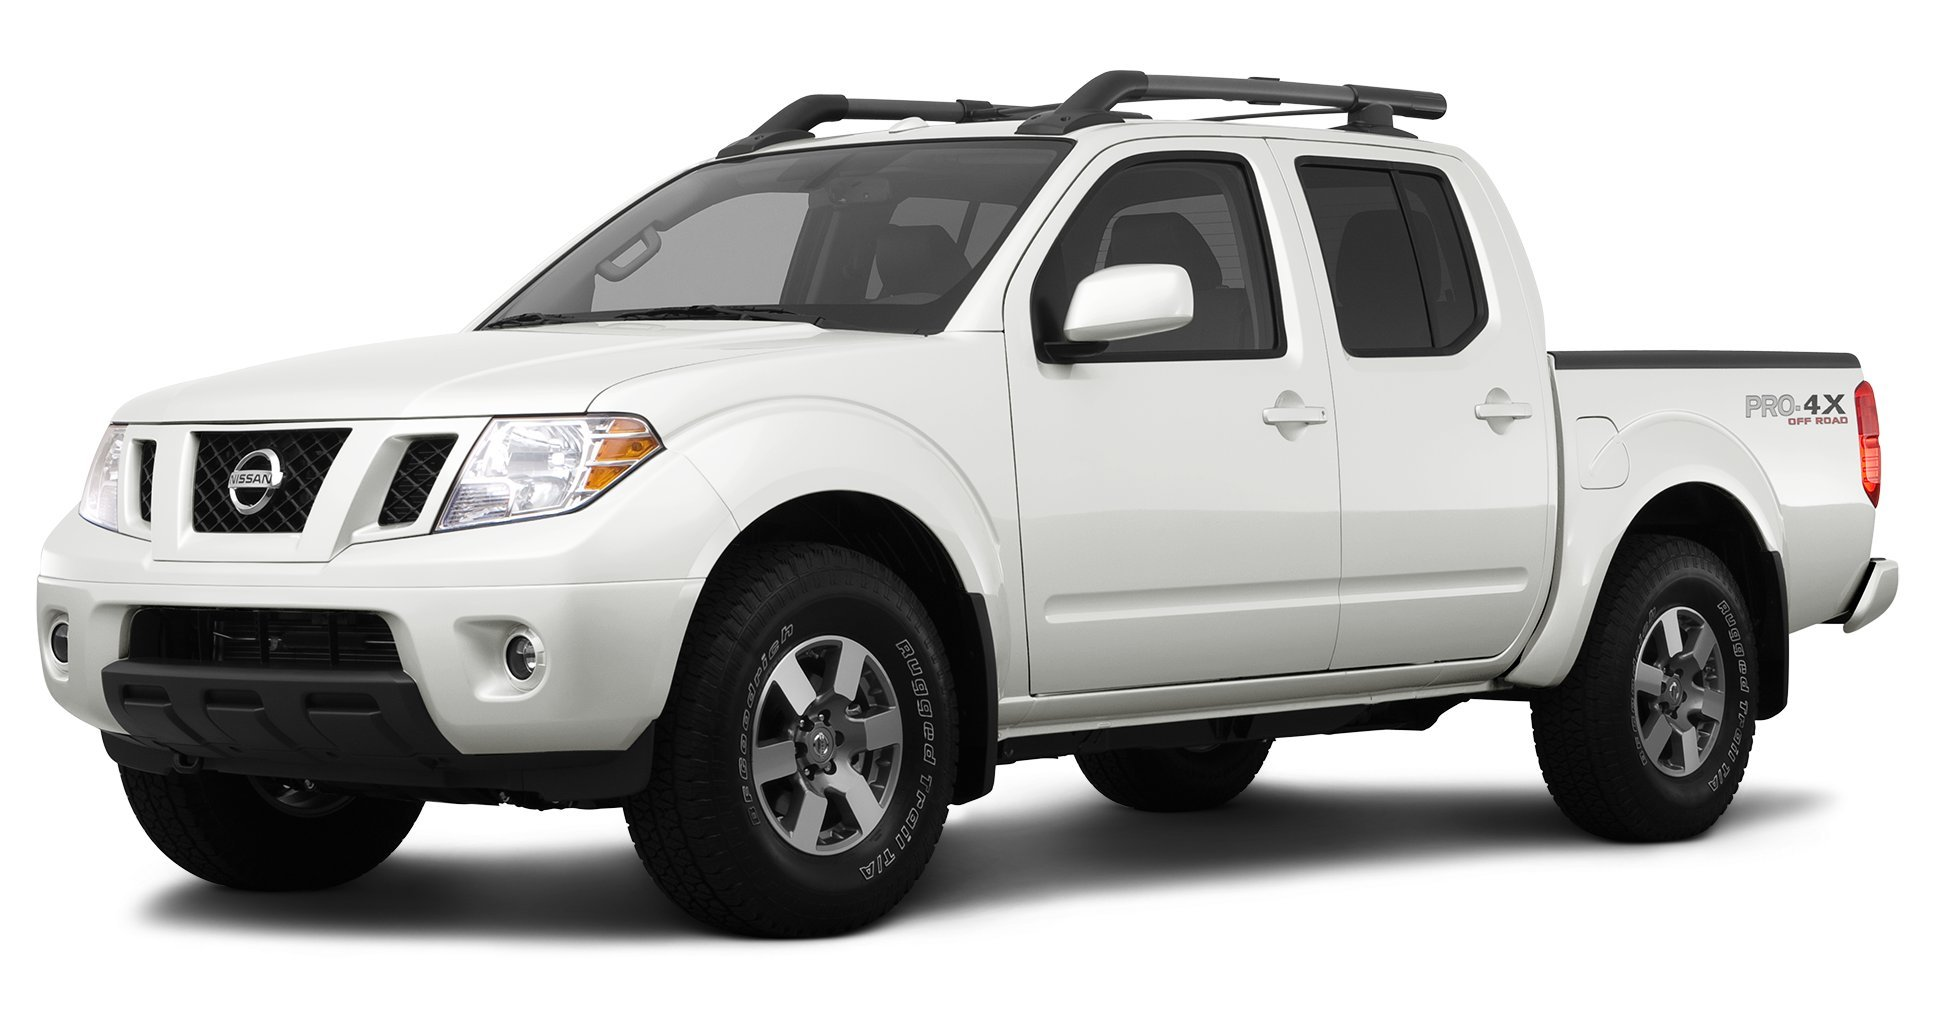 2012 nissan frontier reviews images and specs vehicles. Black Bedroom Furniture Sets. Home Design Ideas